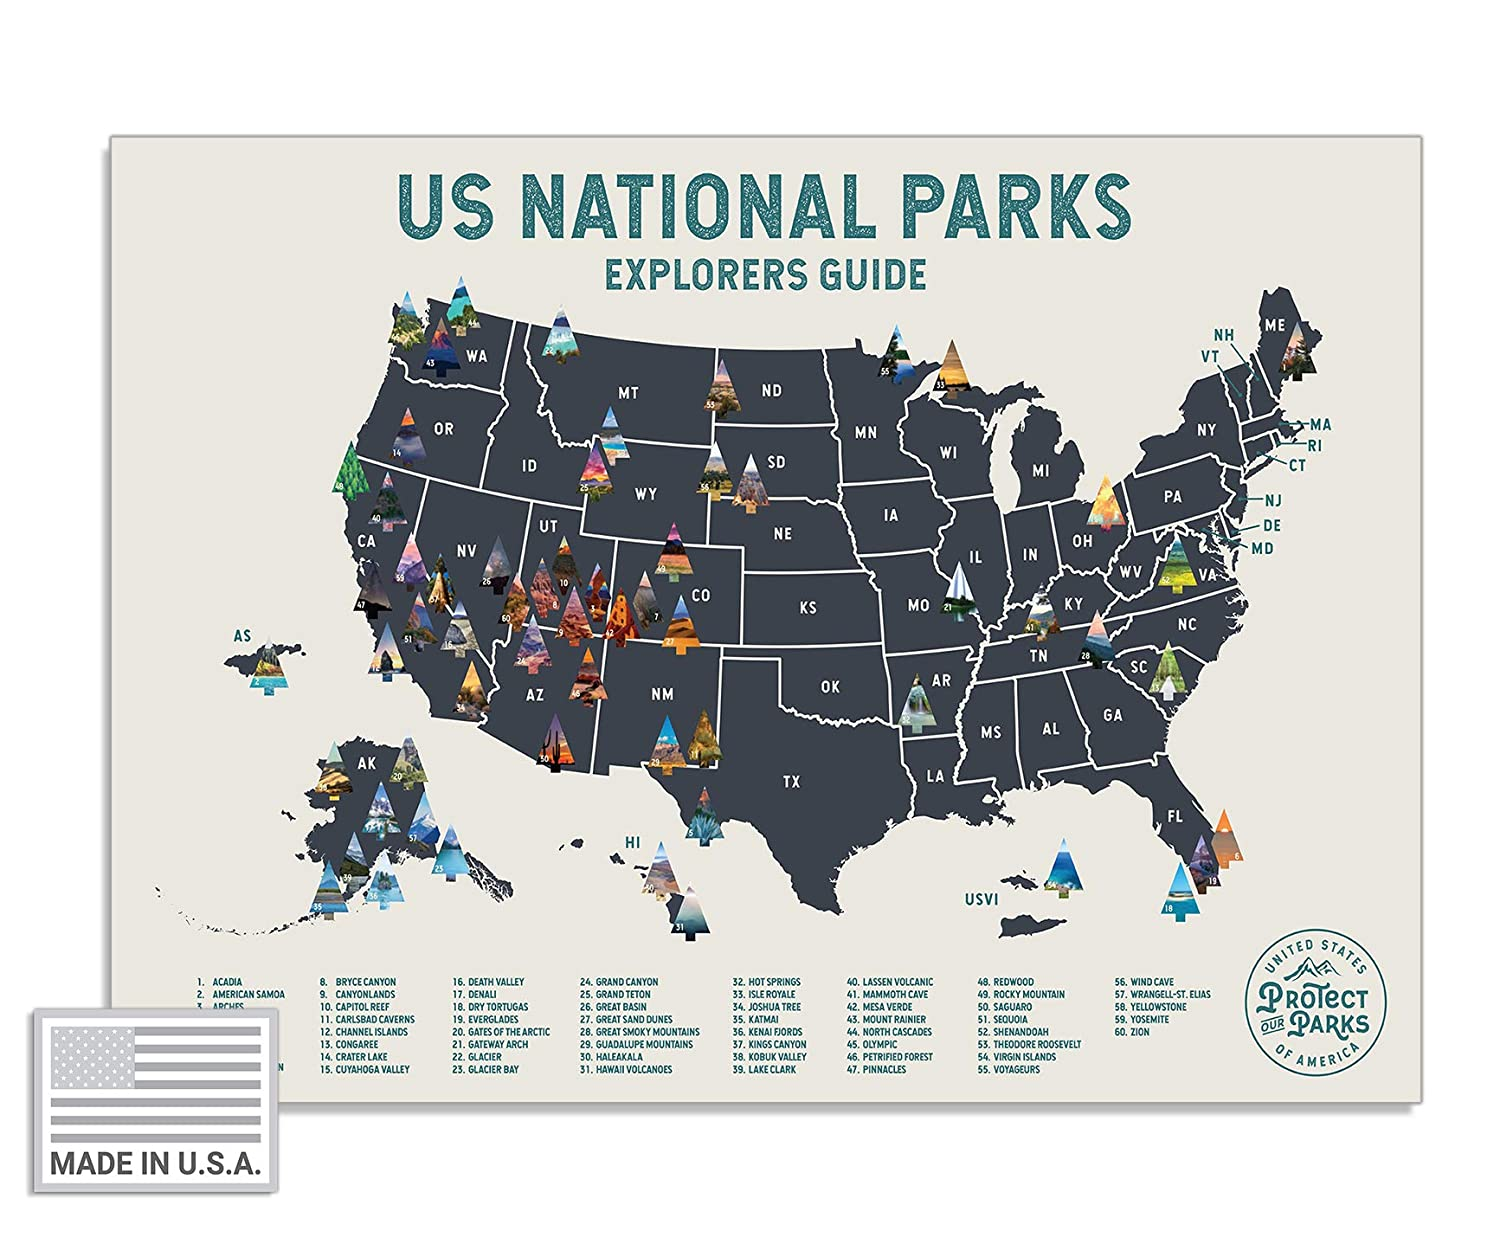 """USA National Park Scratch Off Map (24"""" x 17"""") - Interactive Educational on wtc site map, new orleans zip code map, guangzhou china map, liberty state park map, lockerbie bombing map, pearl harbor attack map, brunswick ga map, larimer county road map, battle of stalingrad map, halloween map, chinatown nyc walking map, saigon vietnam map, pearl river delta map, white house washington dc map, mall of america map, new wtc map, operation iraqi freedom map,"""